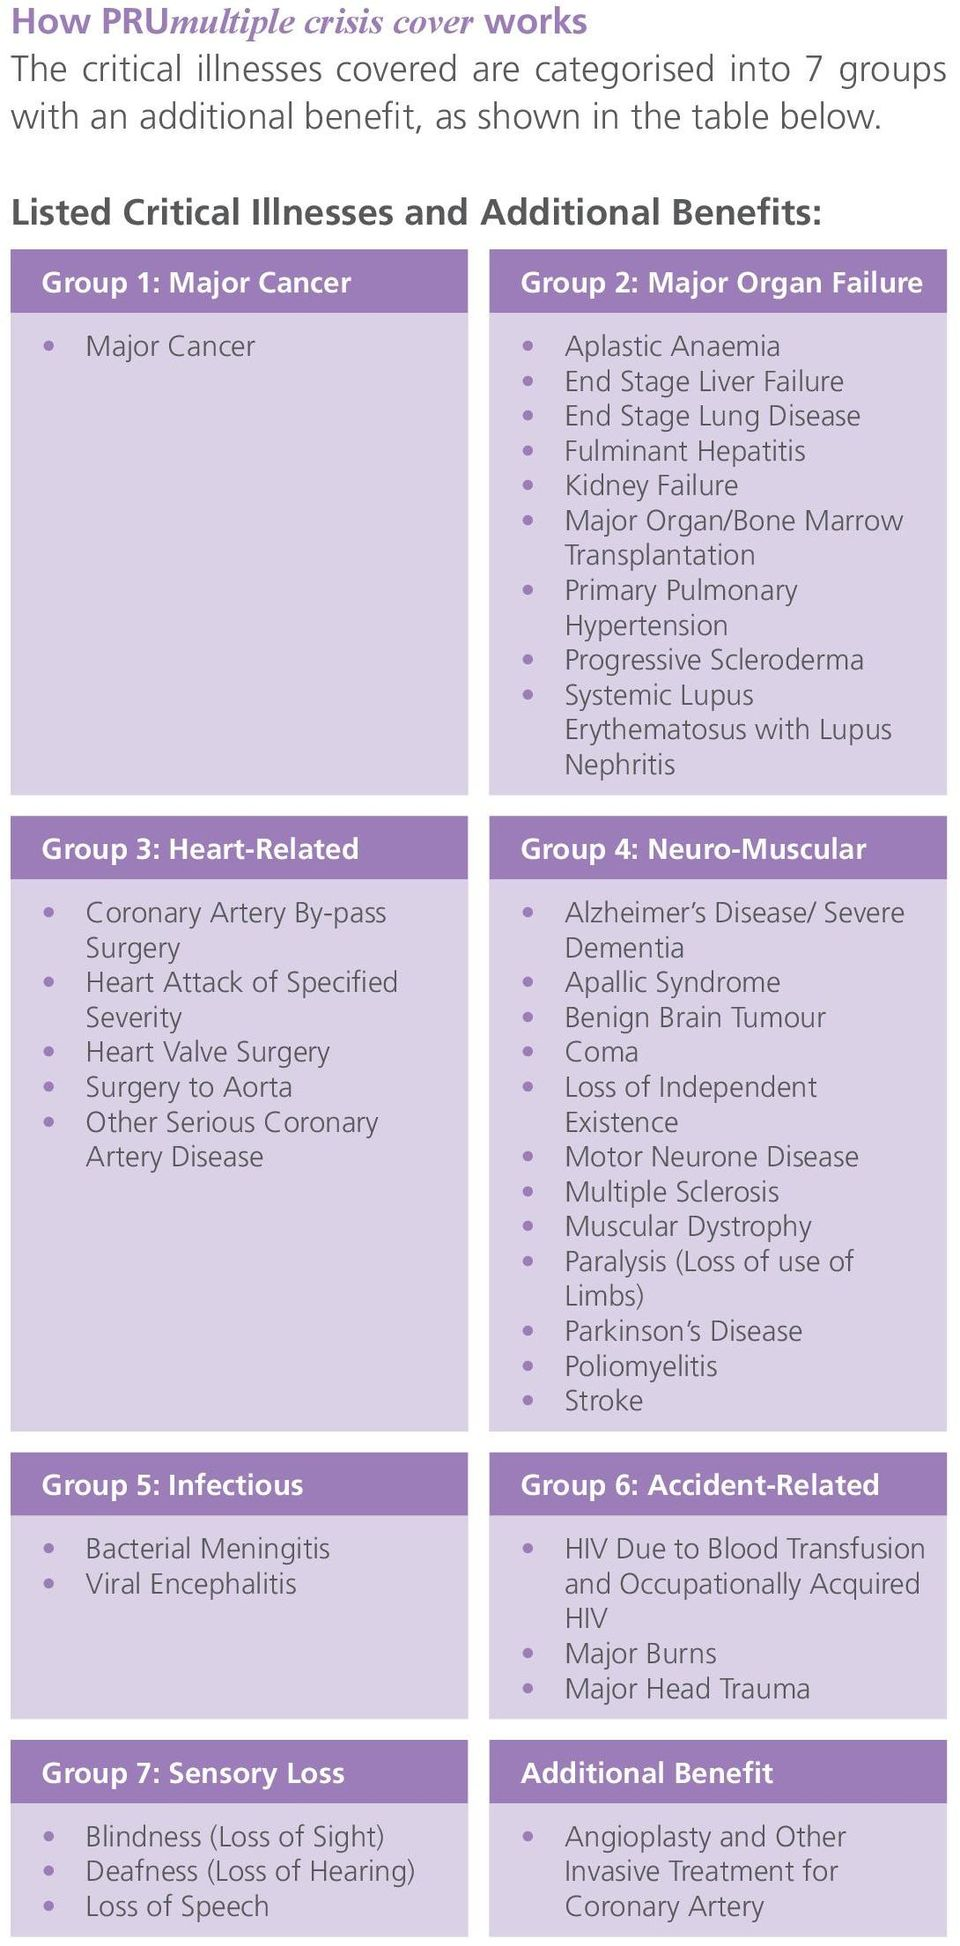 Surgery to Aorta Other Serious Coronary Artery Disease Group 5: Infectious Bacterial Meningitis Viral Encephalitis Group 7: Sensory Loss Blindness (Loss of Sight) Deafness (Loss of Hearing) Loss of